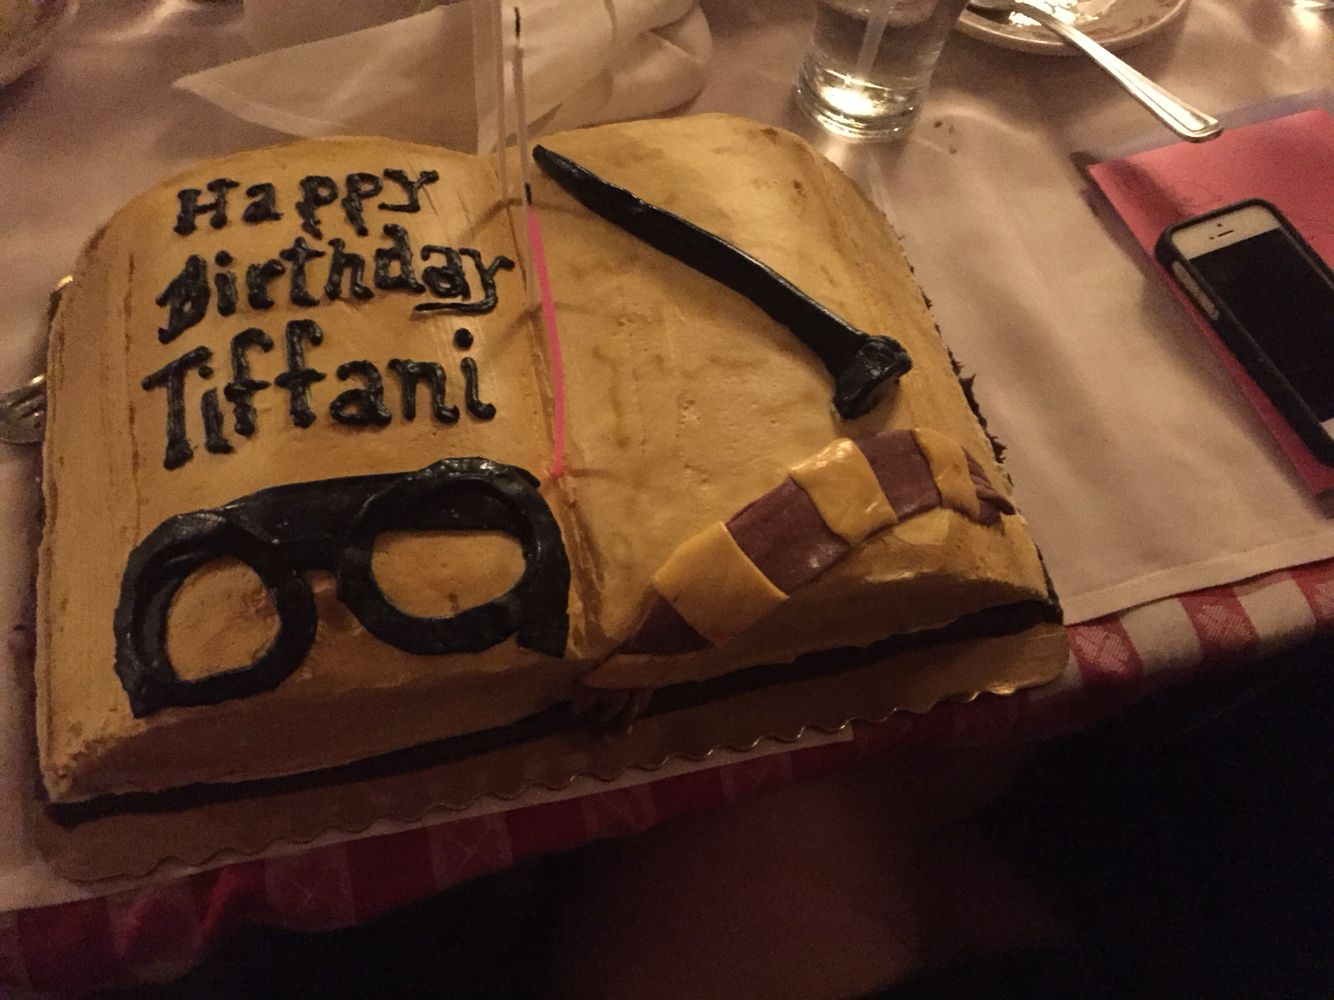 Harry Potter Cake From Publix Bakery On Treasure Island